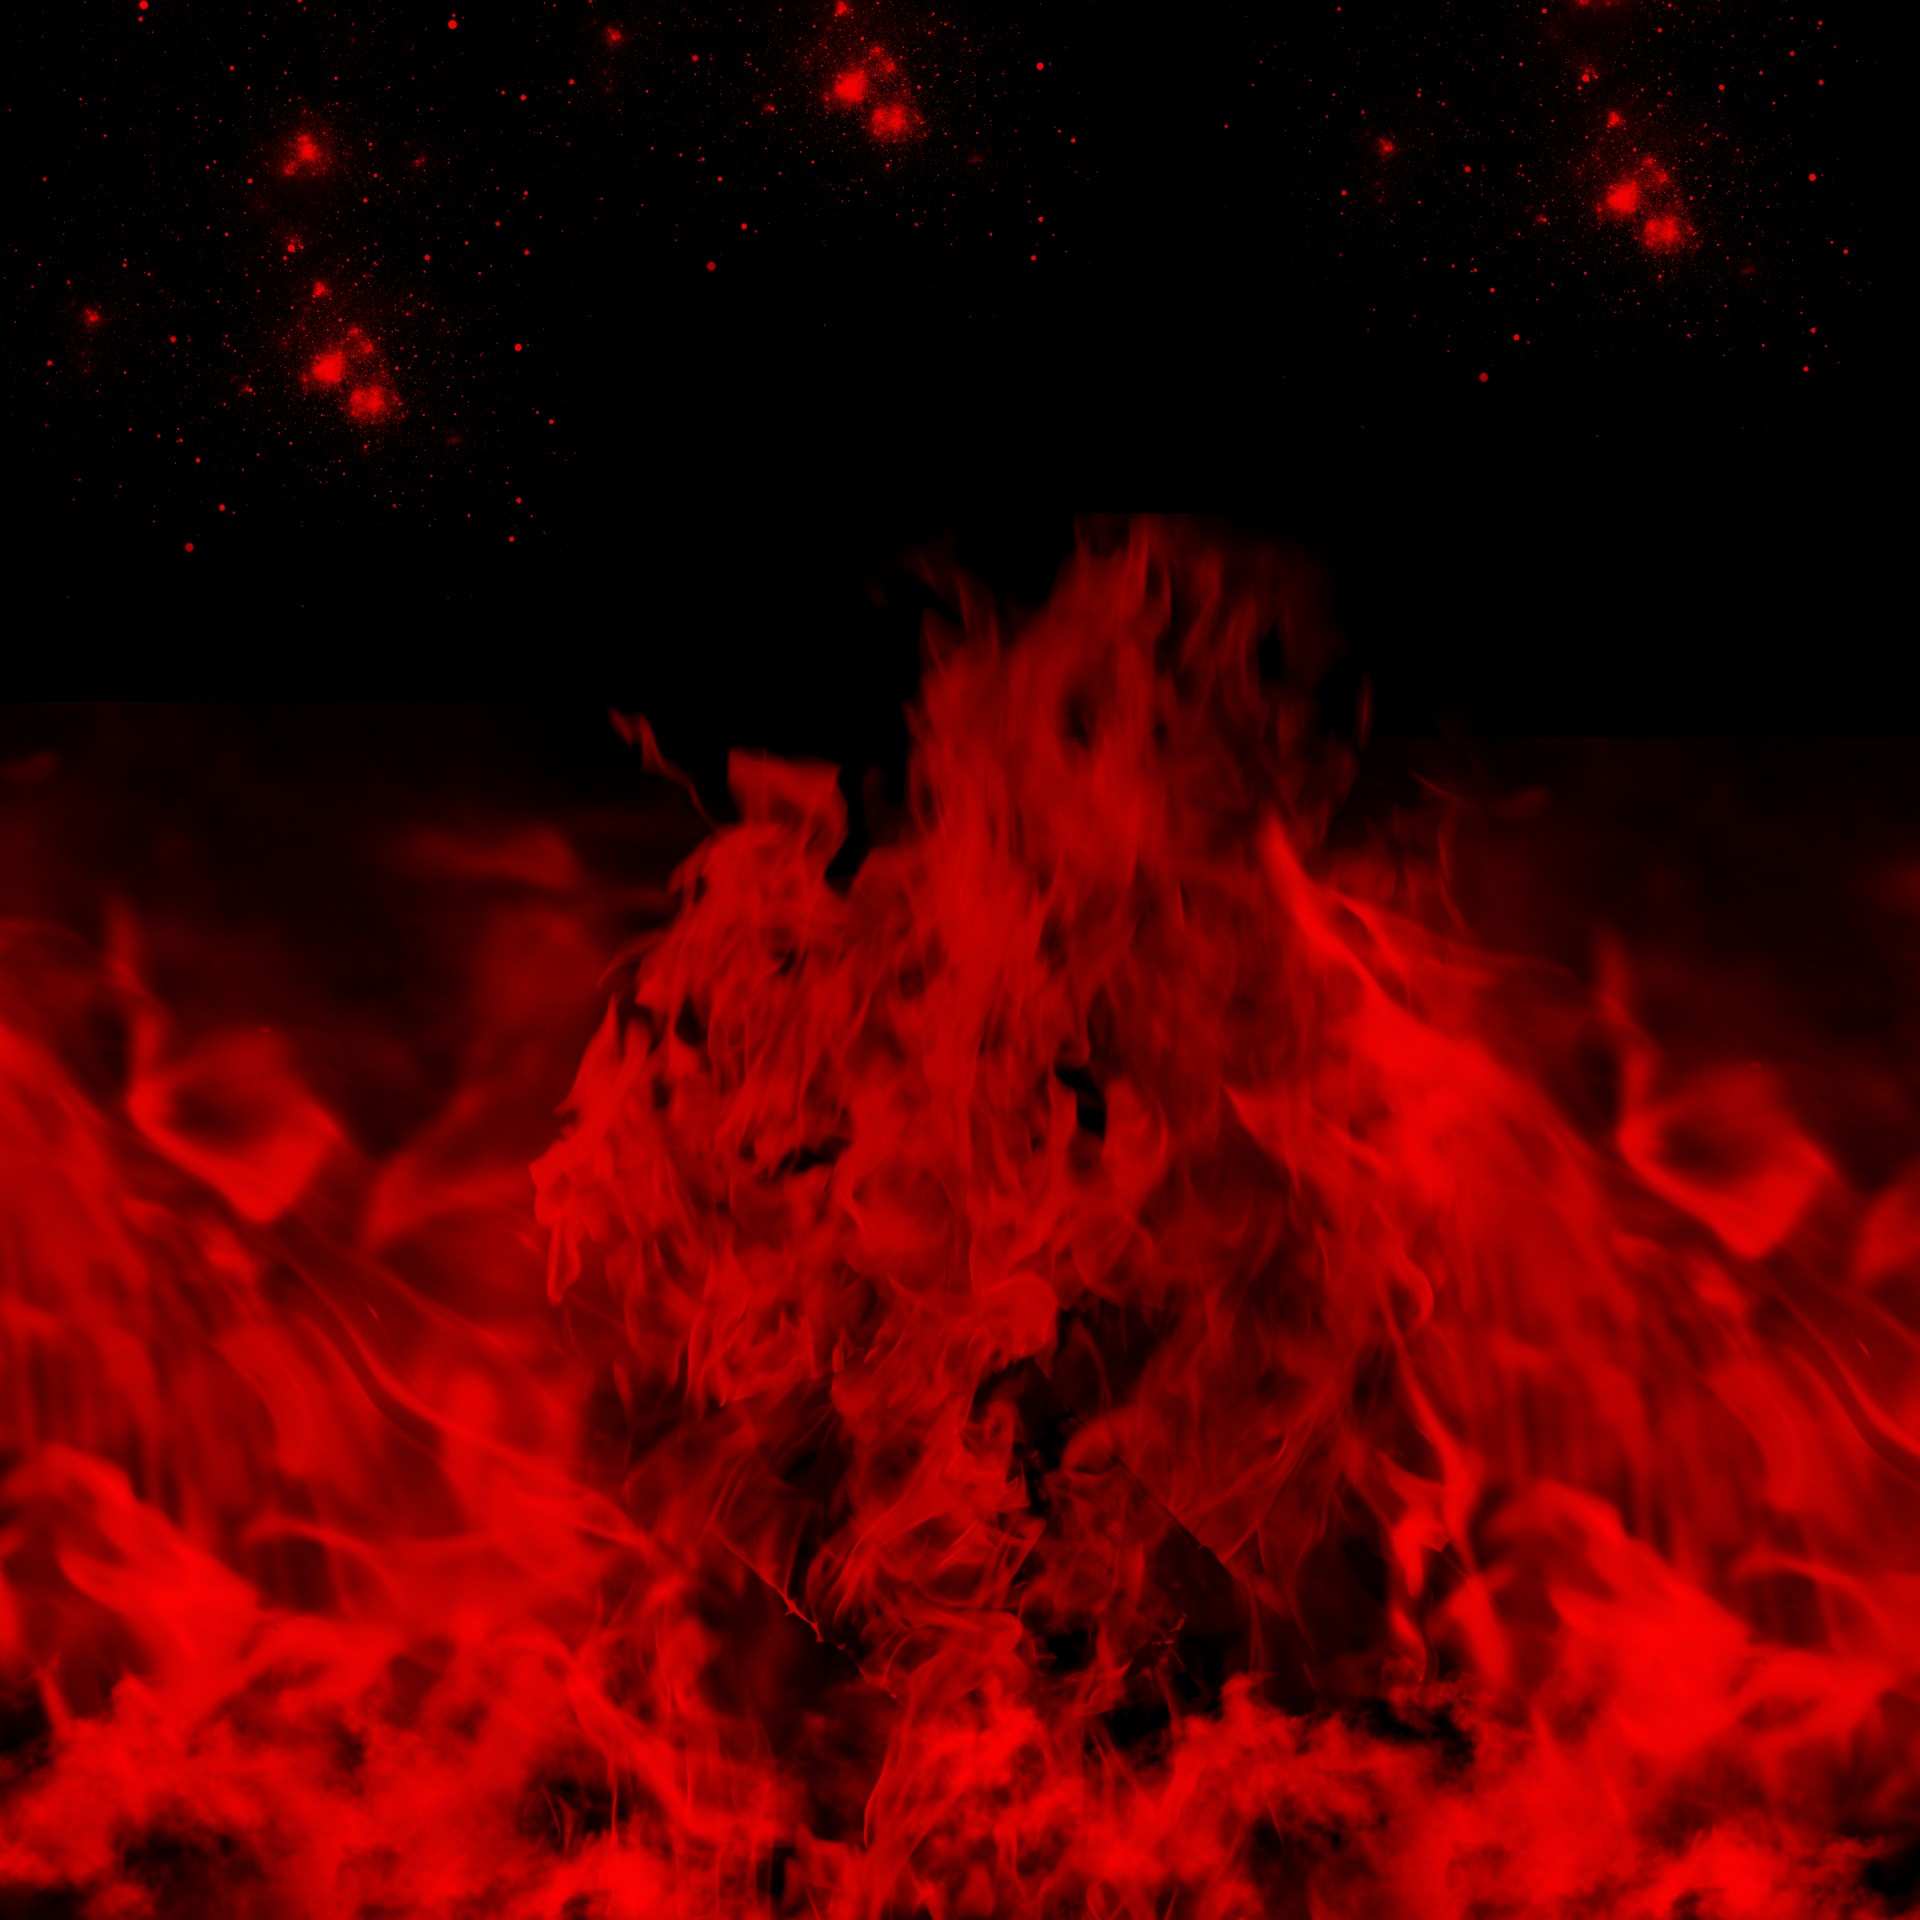 Flame Blast Red And Black Free Stock Photo  Public Domain